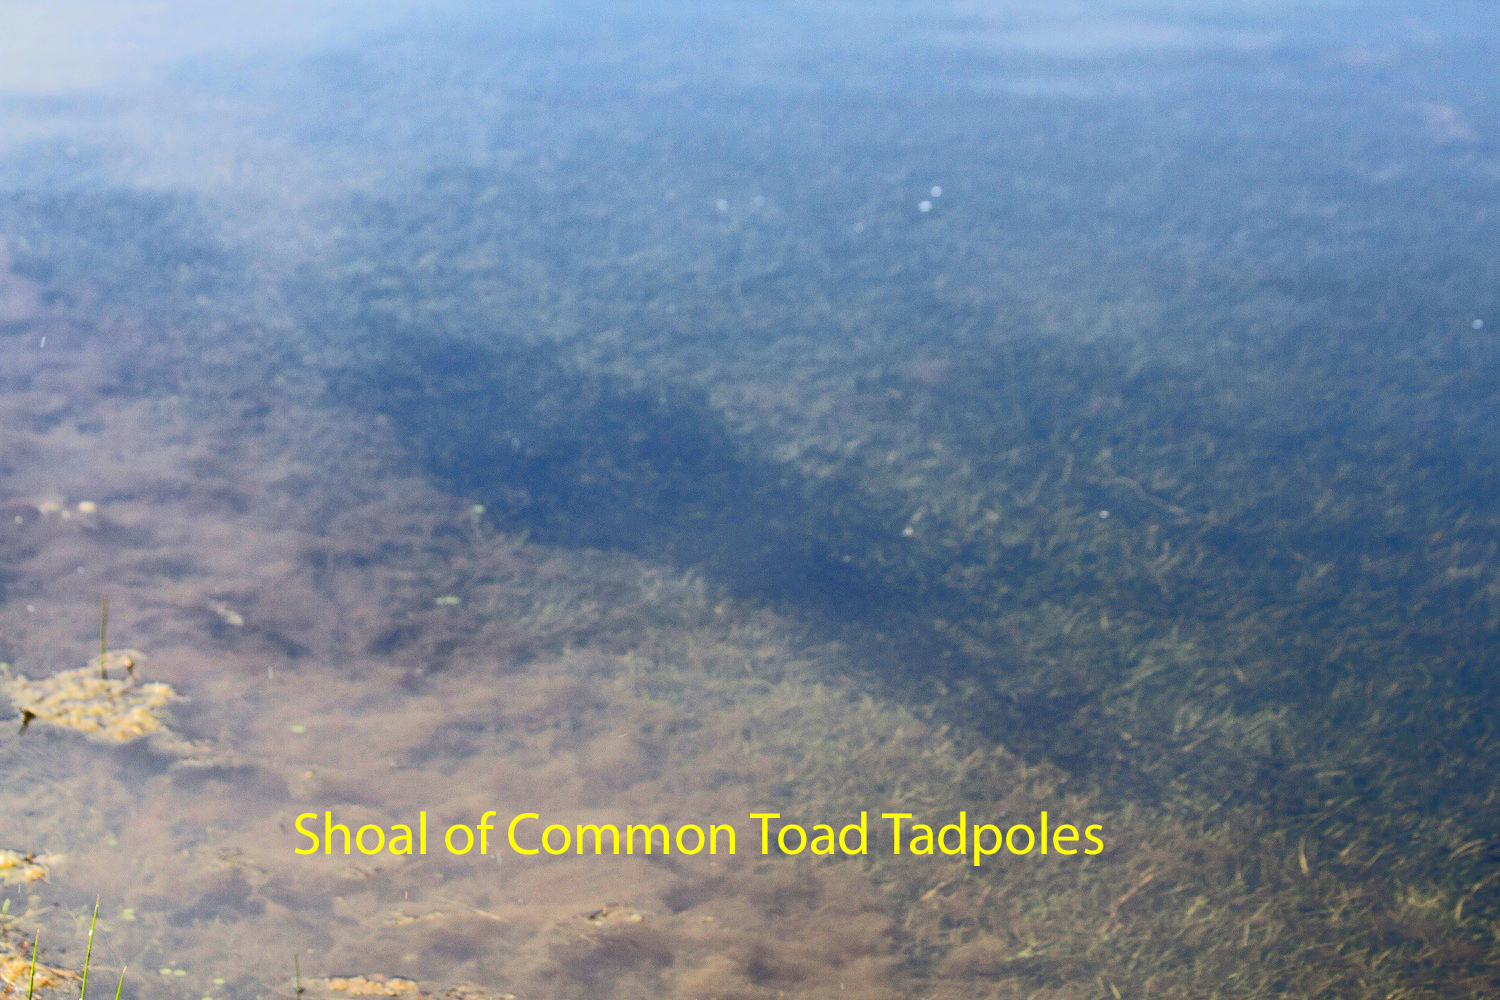 019-shoal-of-common-toad-tadpoles-1-1-9dd7bc314107c217ceb02673aa61321eea43bb94